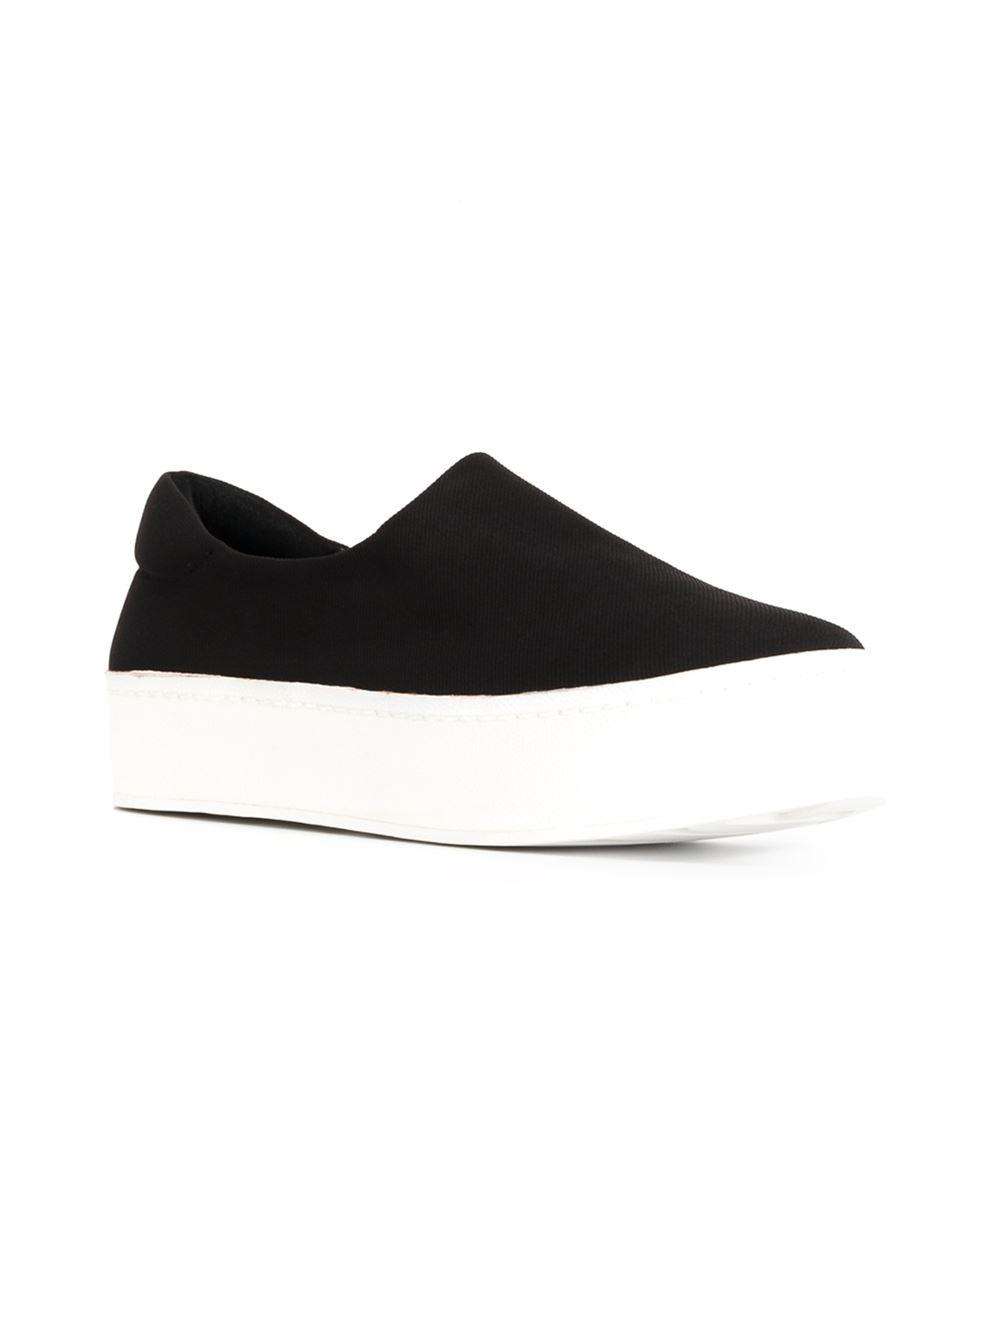 Opening Ceremony Canvas Slip-on Sneakers in Black